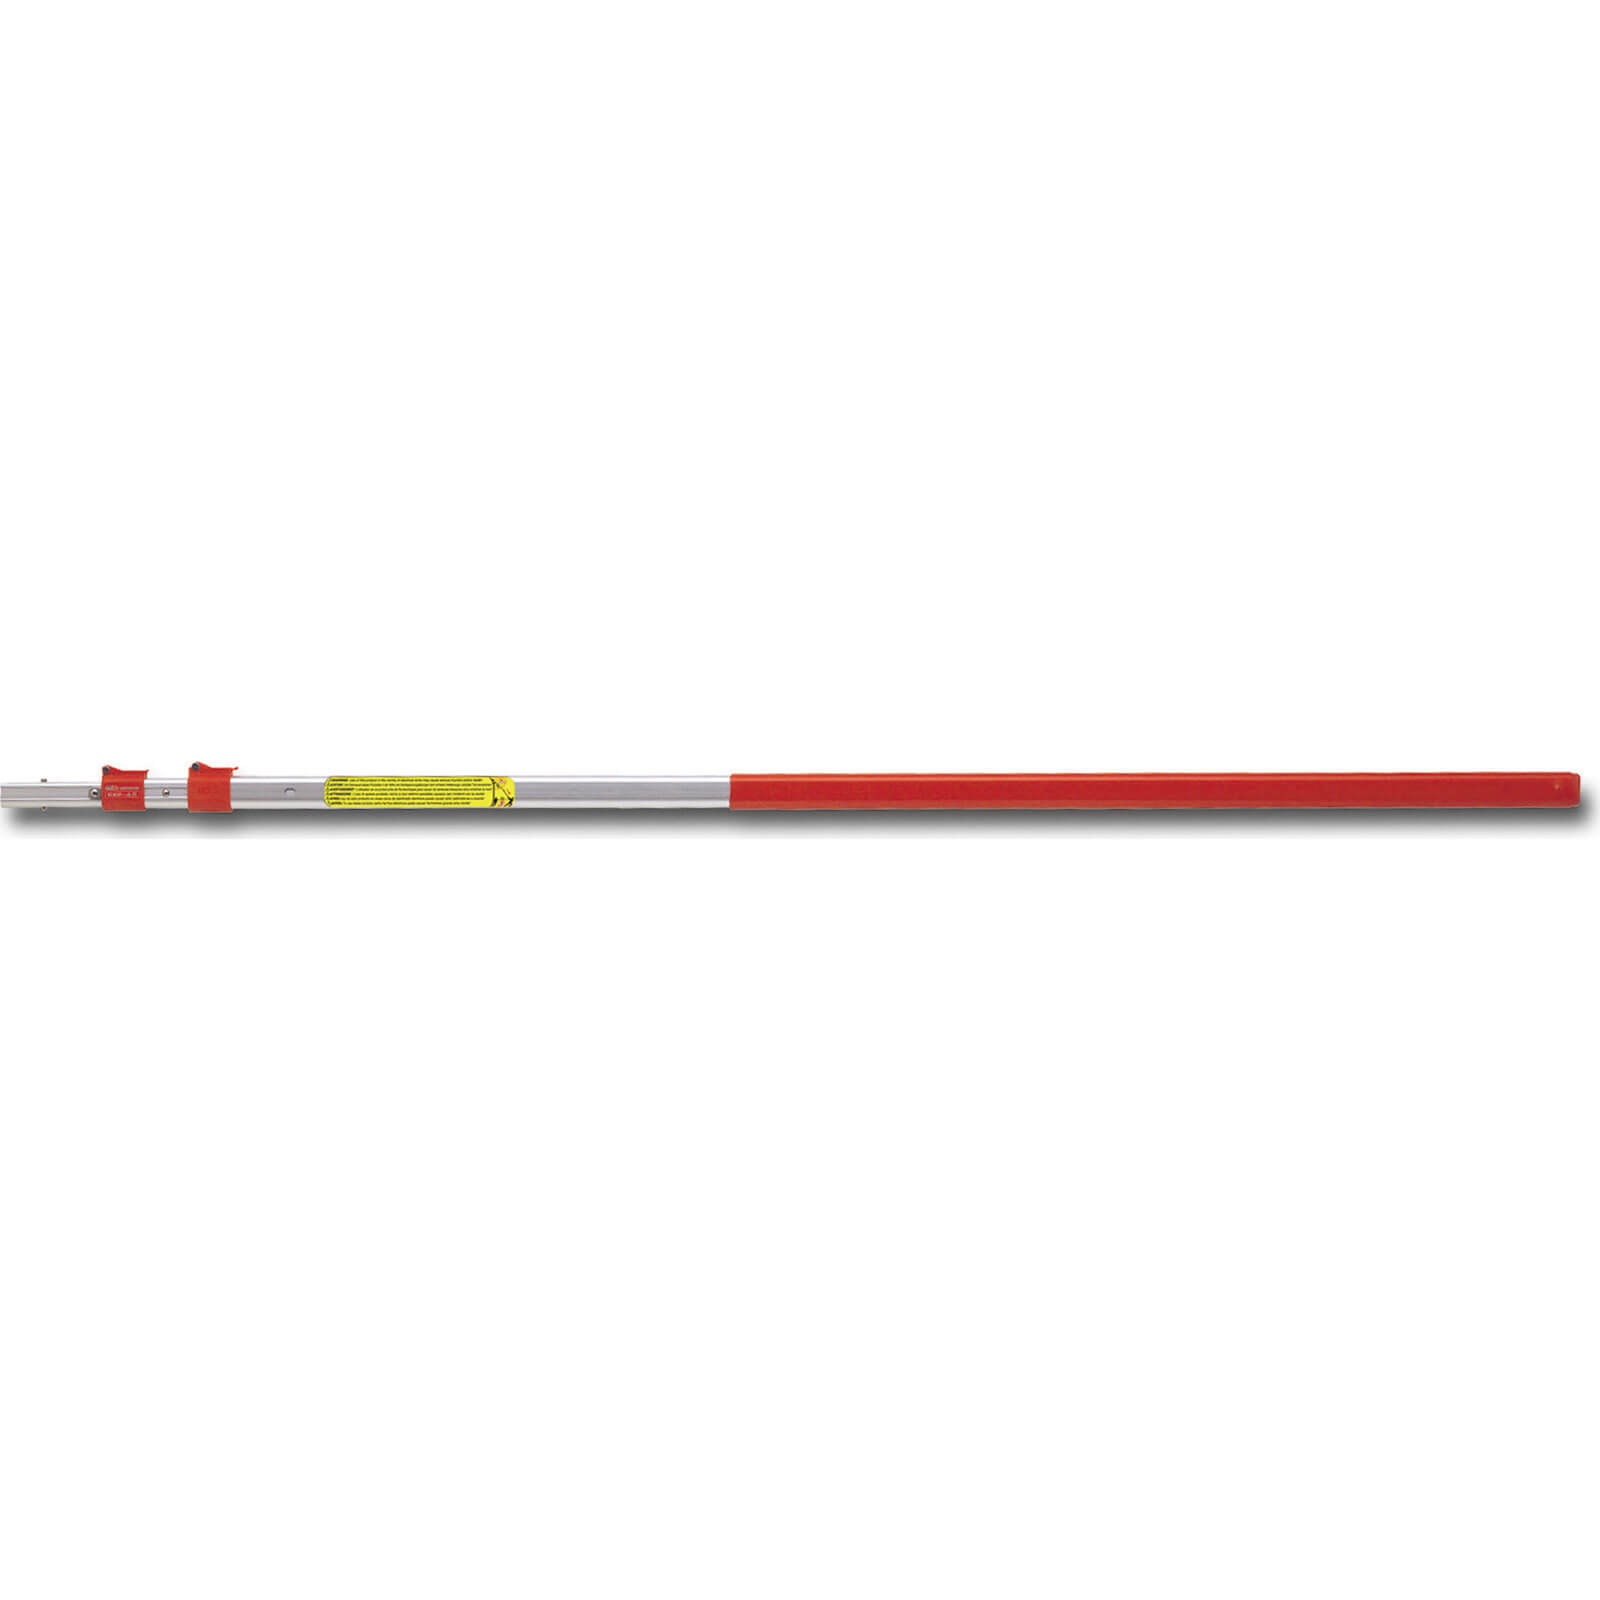 ARS EXP-4.5 Telescopic Pole for Pole Saw Blade Heads 1.8 - 4.5 Metres Long